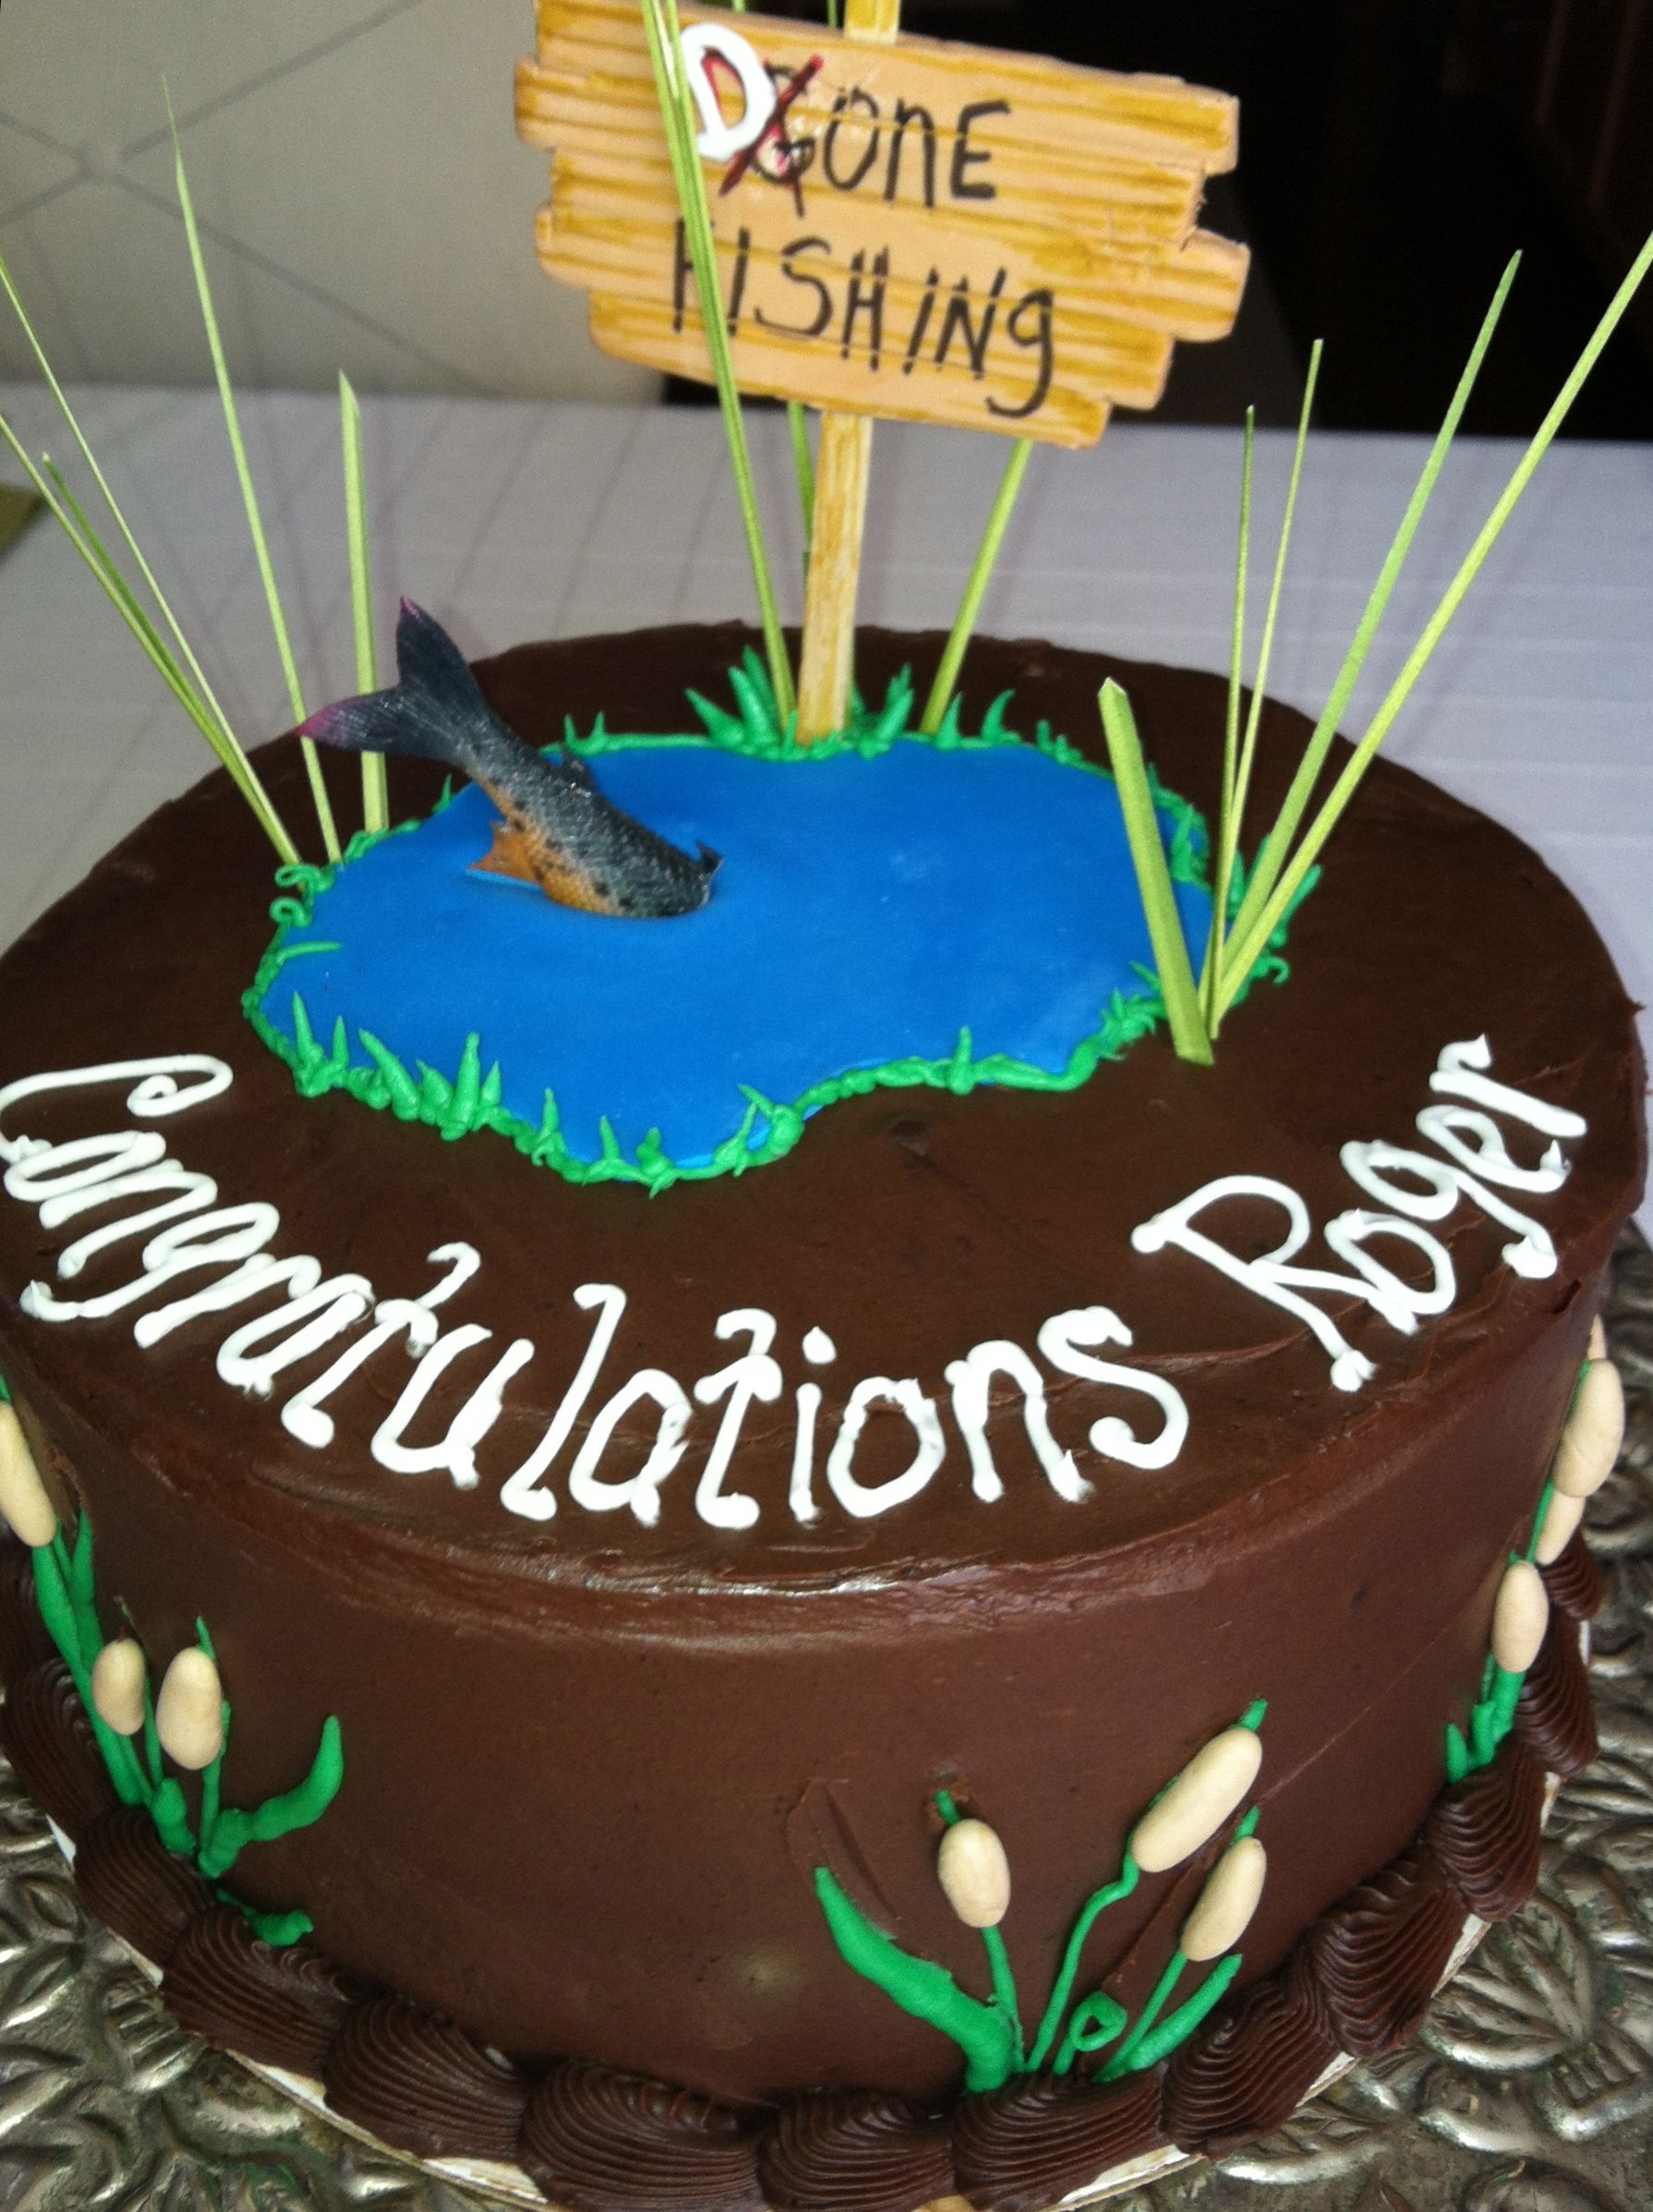 Retirement Cake Gone Fishing